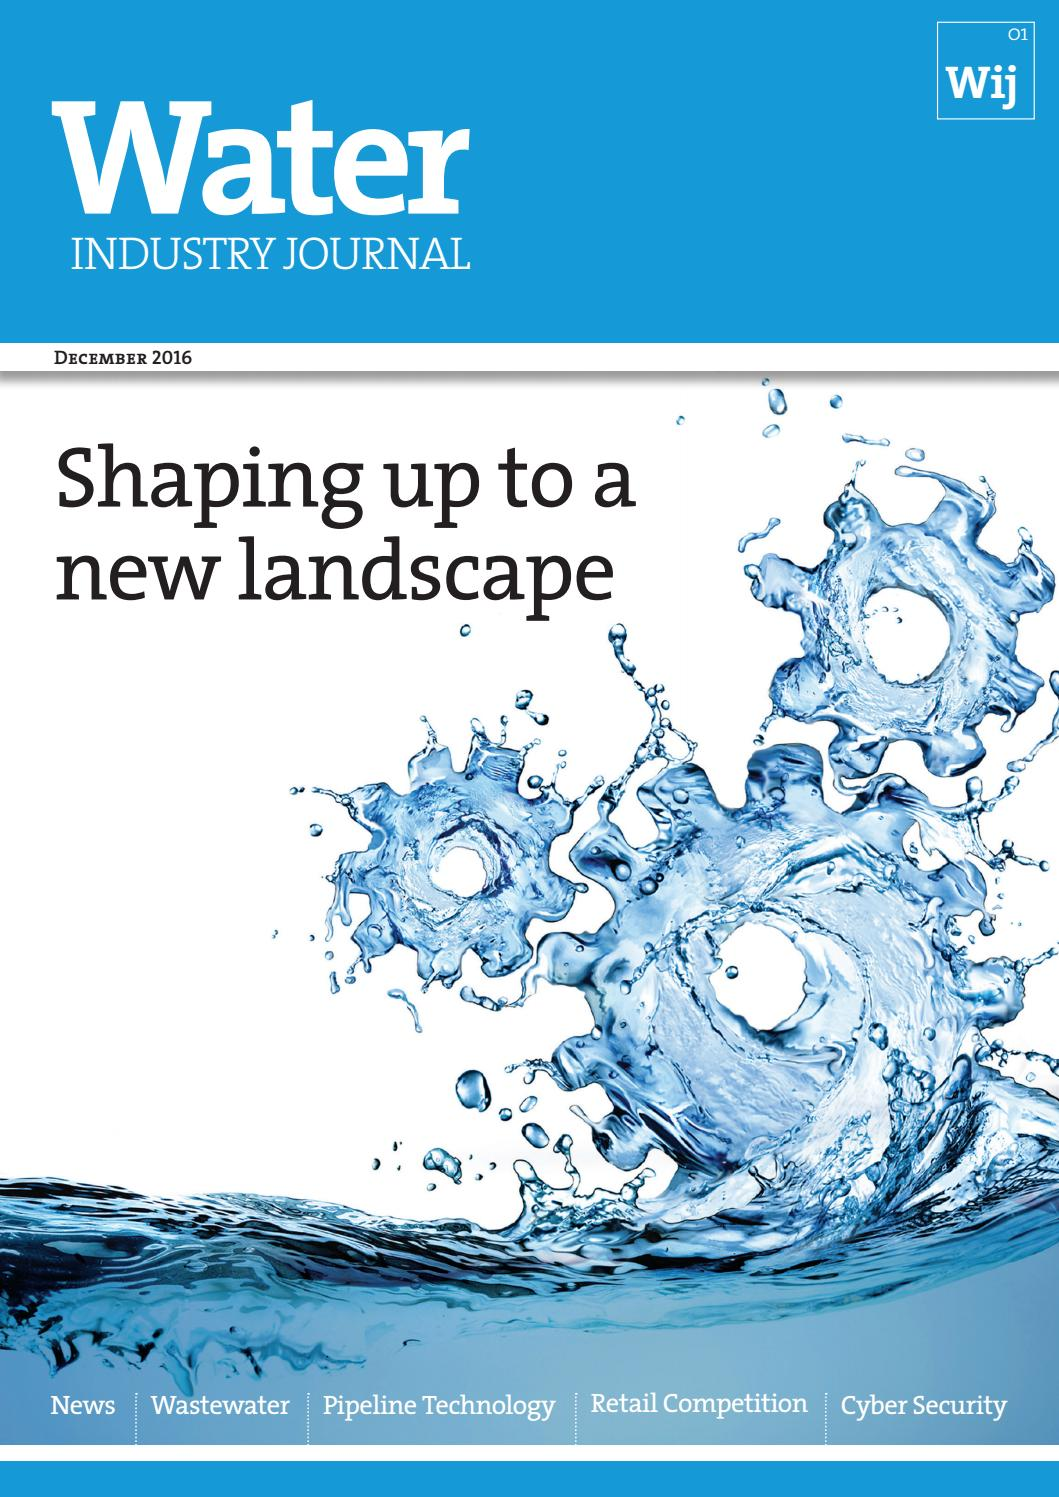 Water industry journal 1 by distinctive publishing issuu fandeluxe Choice Image